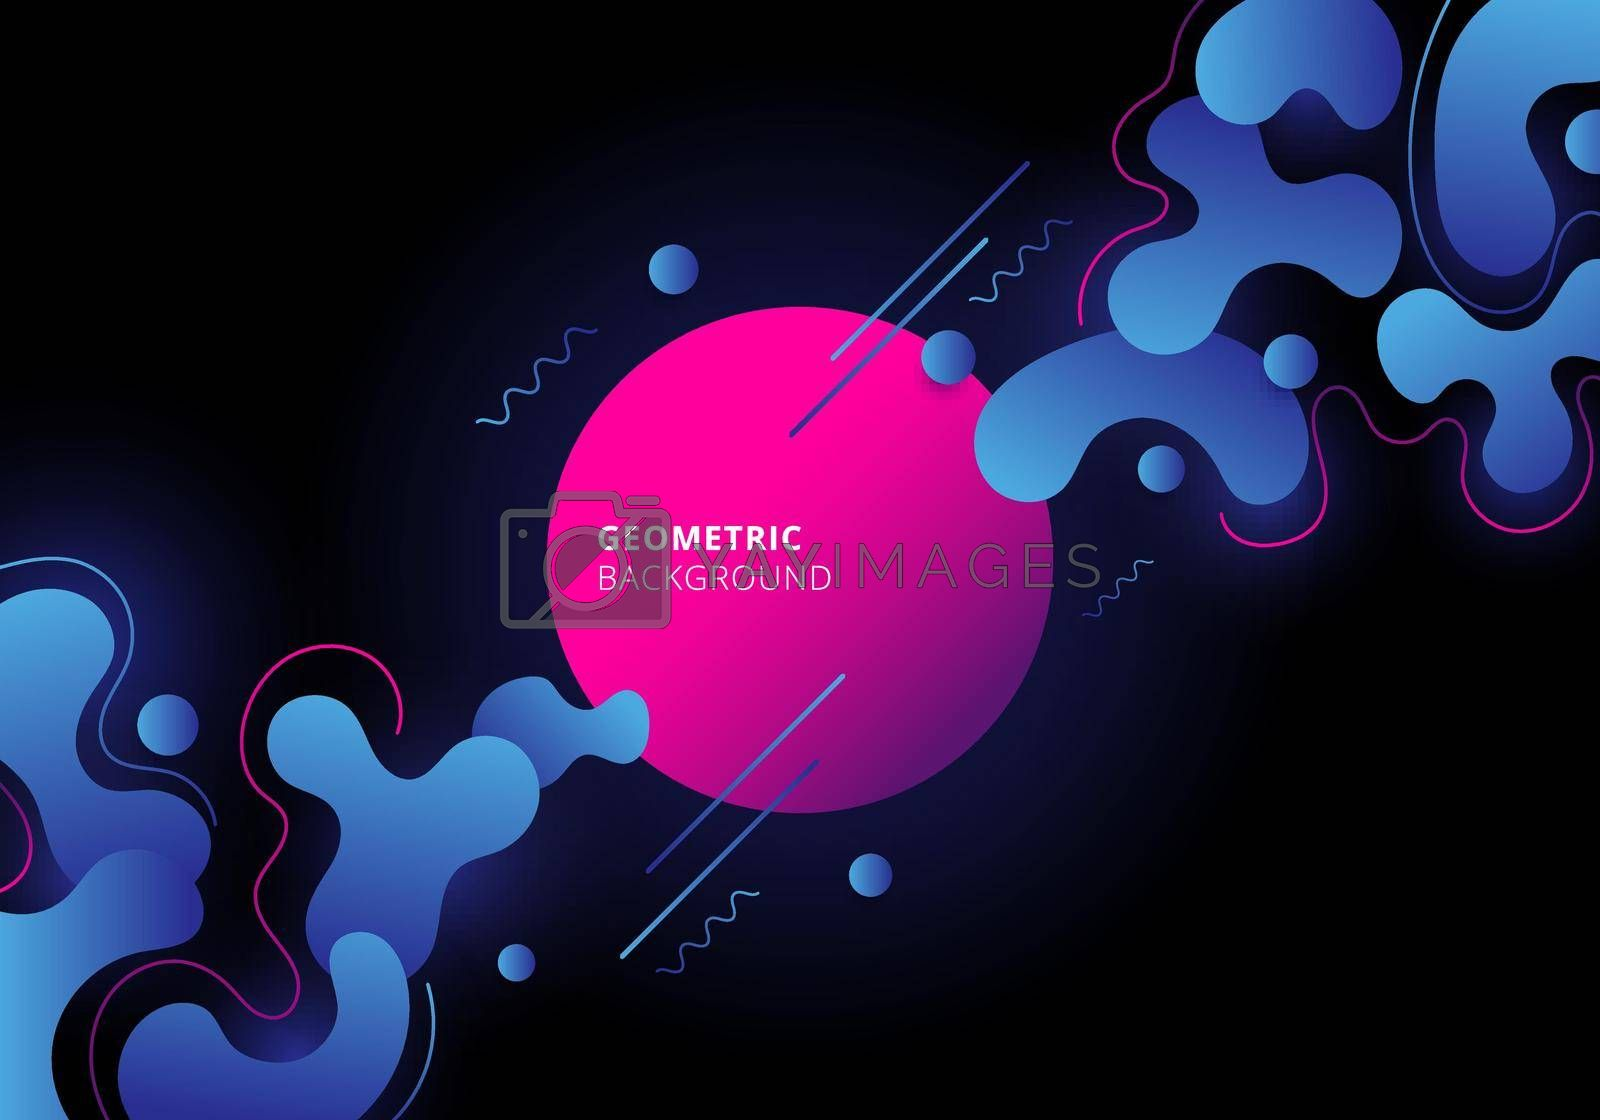 Abstract blue and pink color geometric with fluid flow on black background. Vector illustration